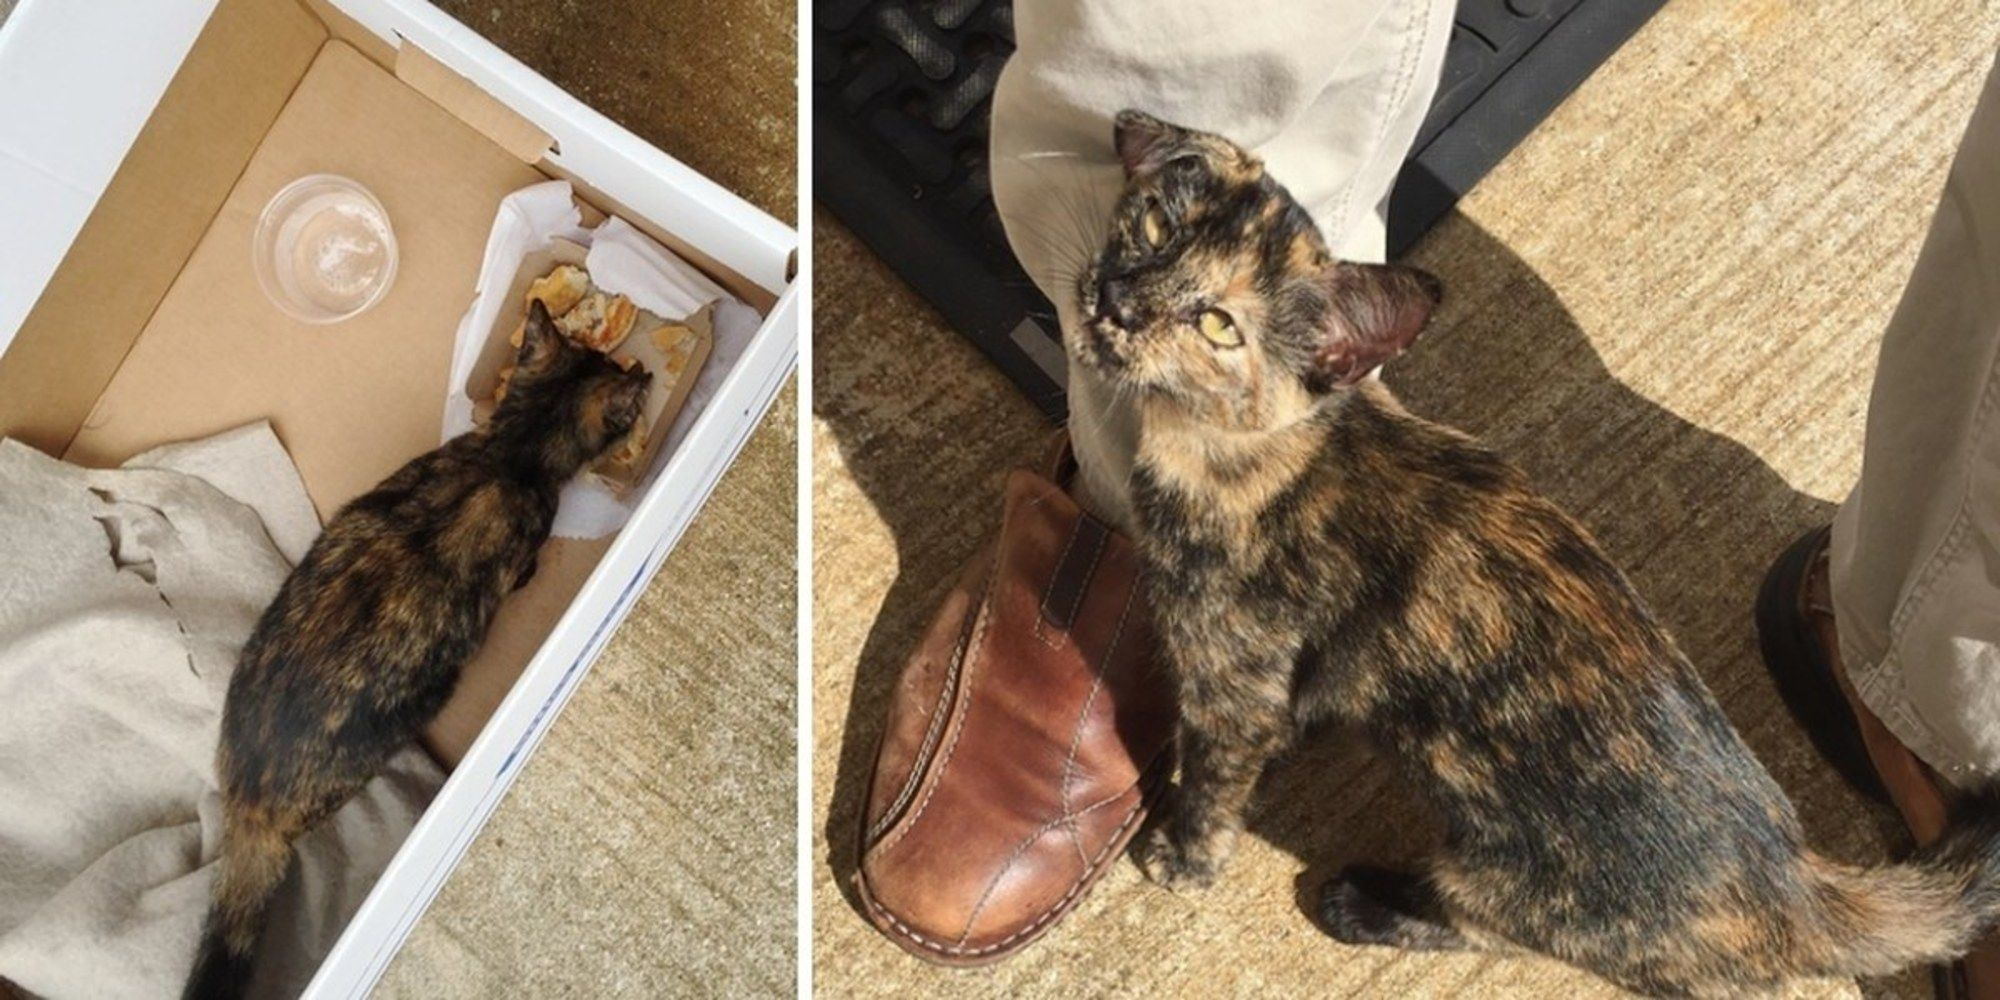 A Scrawny Tortie Kitten Was Wandering Outside A Factory In Houston When A Man Found Her Trying To Eat Some Tortie Kitten Cute Animal Pictures Cats And Kittens